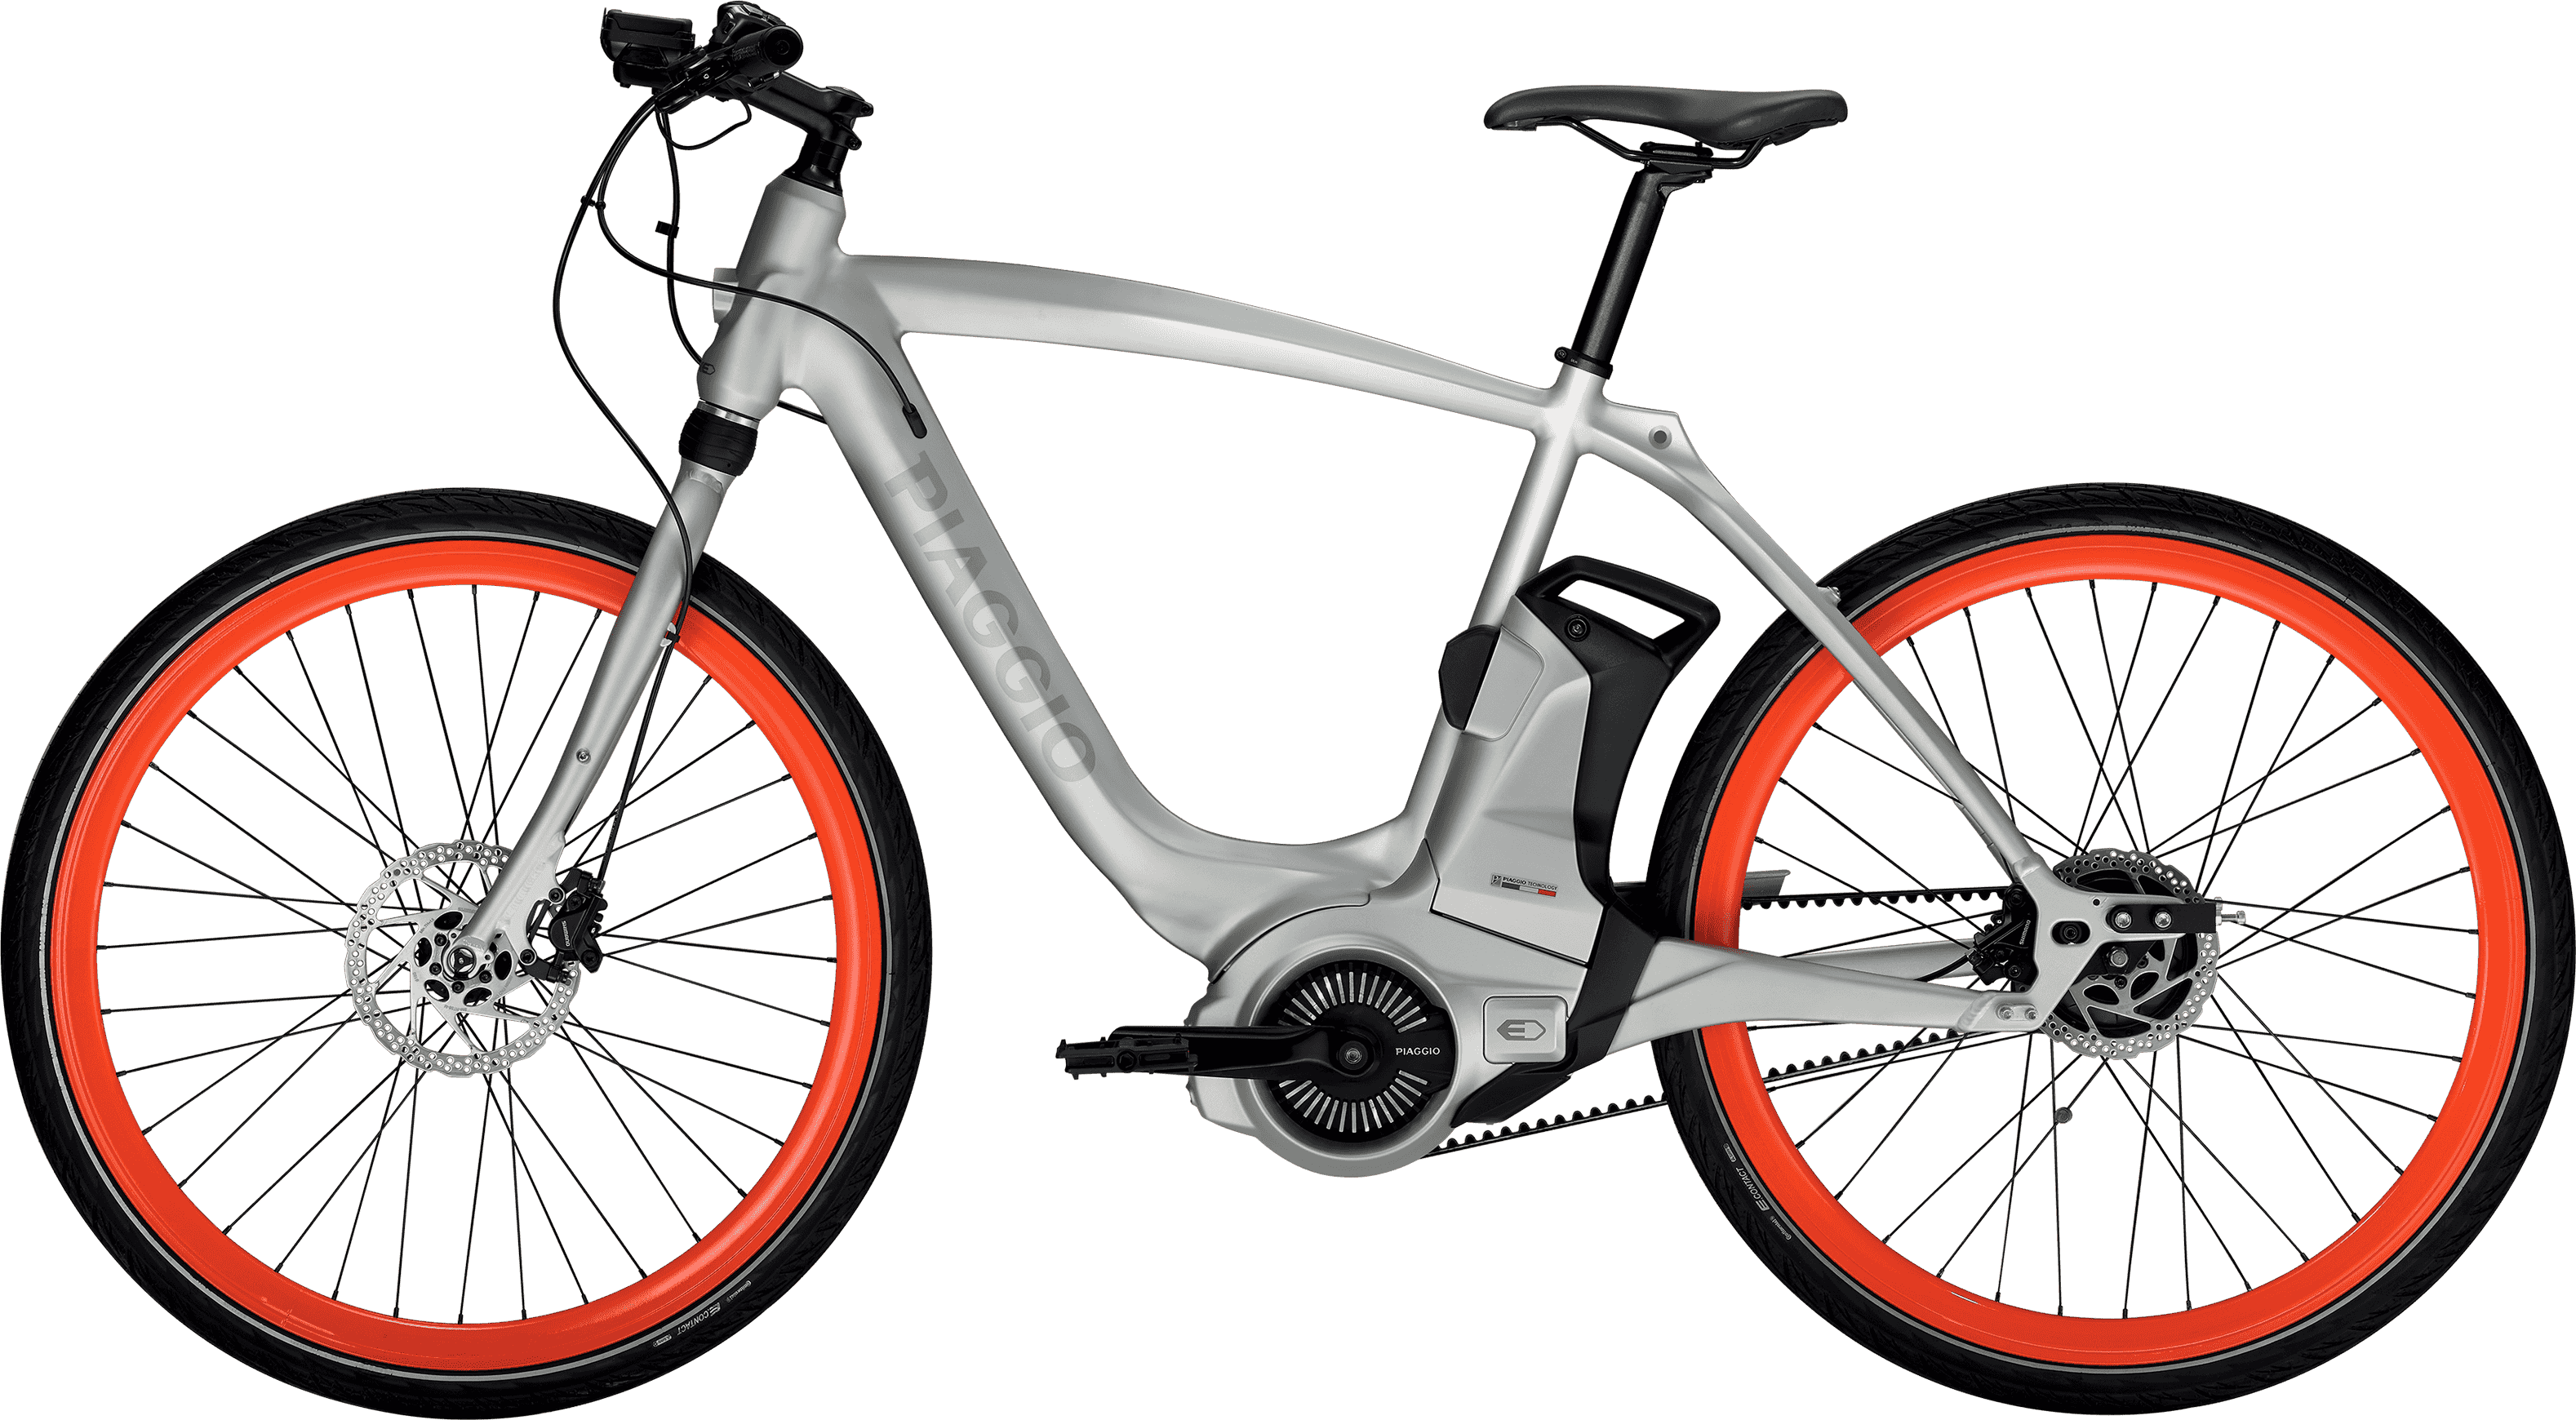 learn more about the new wi-bike : a project that goes beyond the